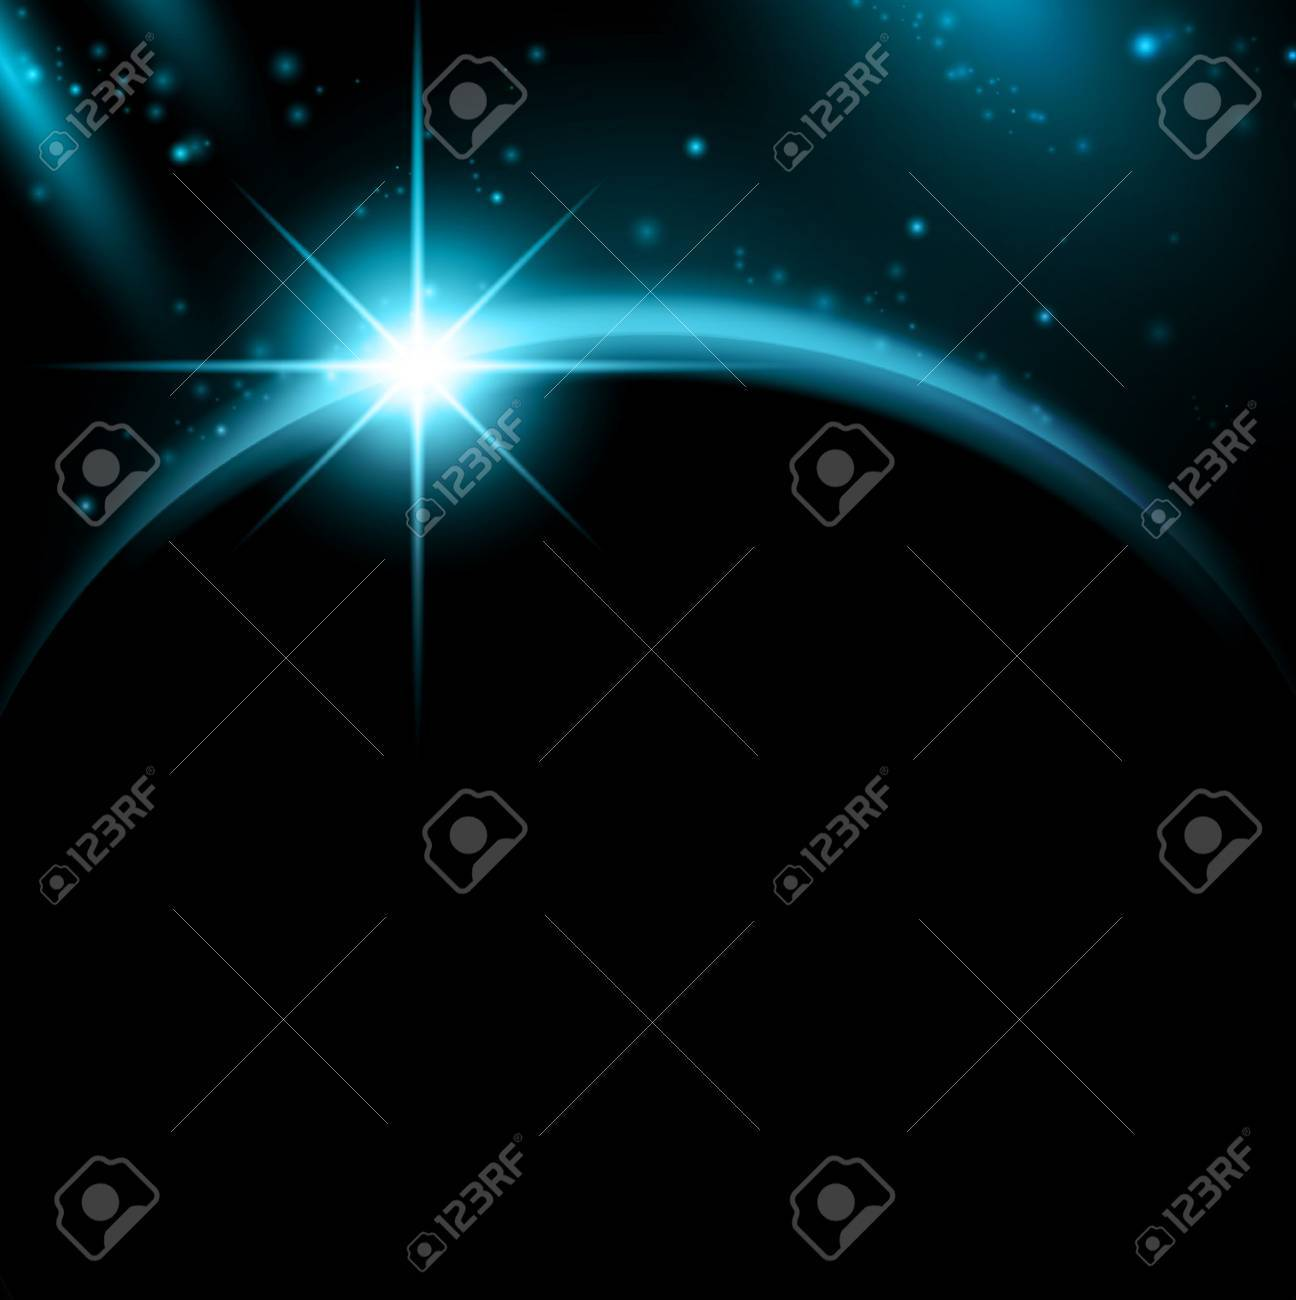 space in night with copyspace for your text - 9093442